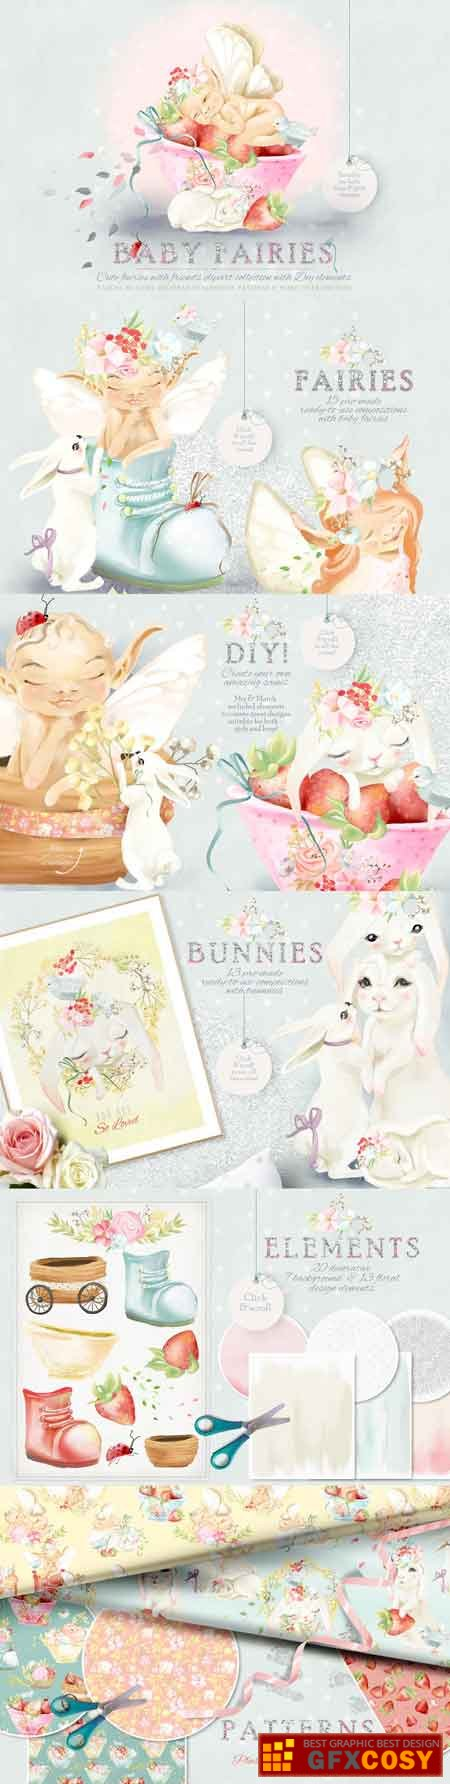 Baby Fairies Clipart Collection 2770171 » Free Download.